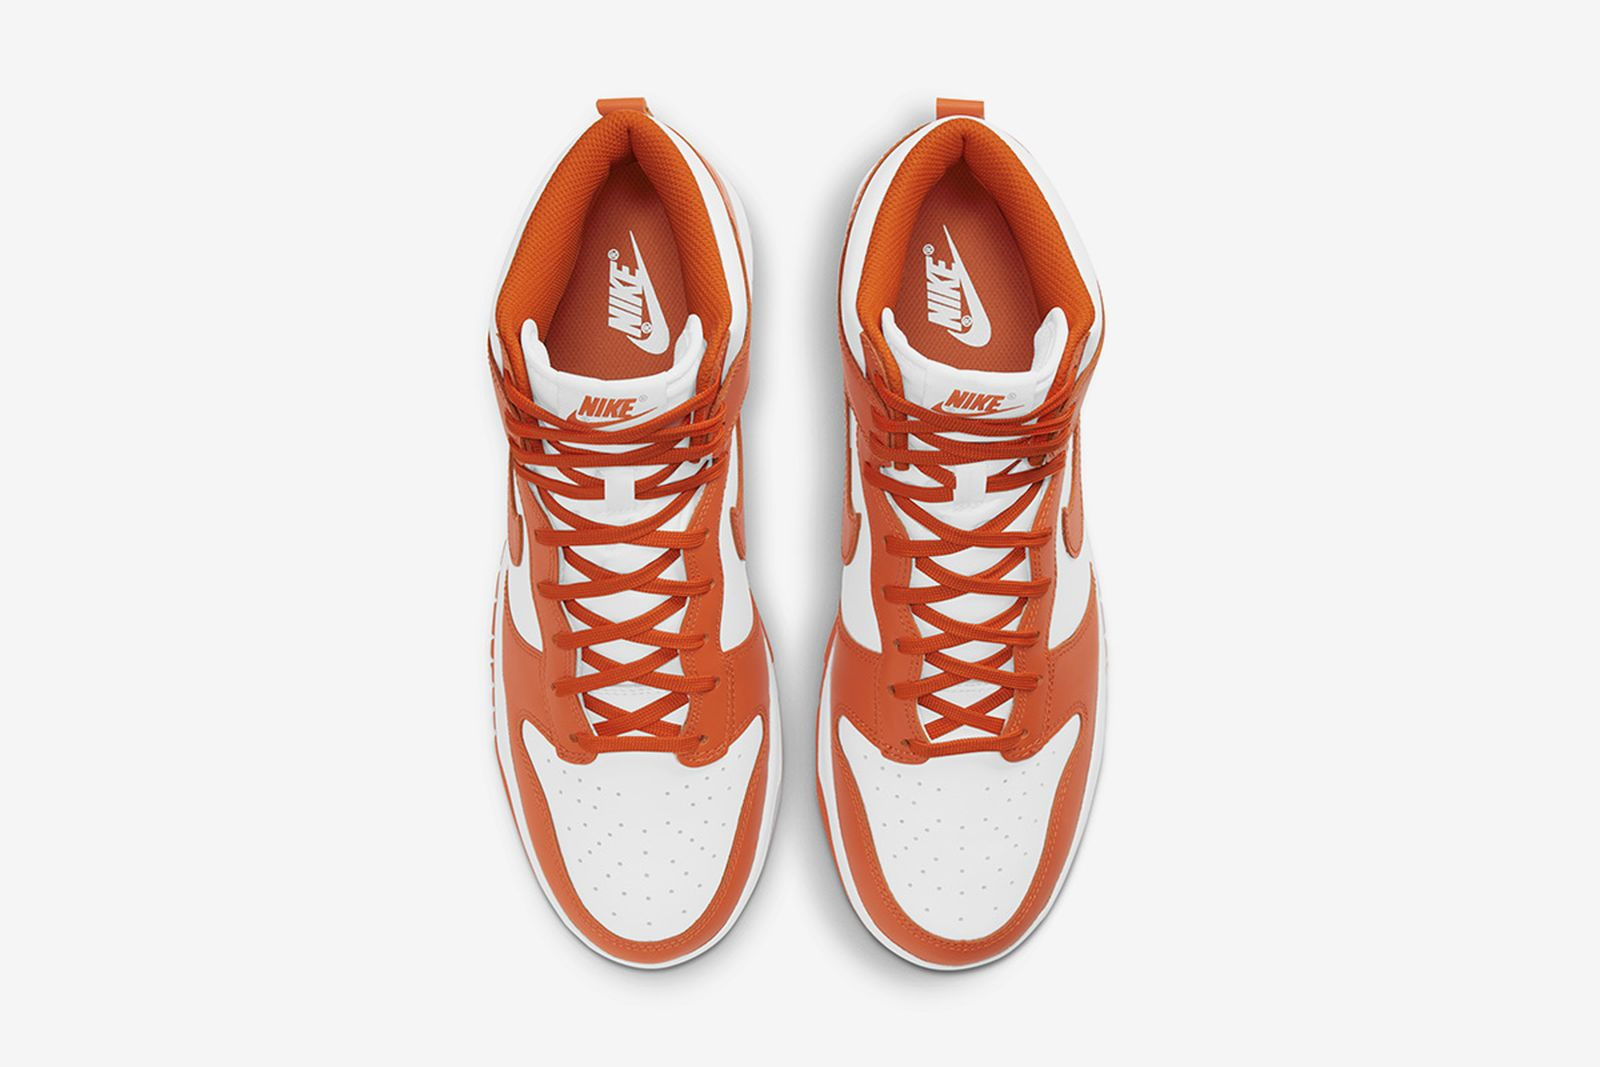 nike-dunk-spring-2021-release-date-price-1-22